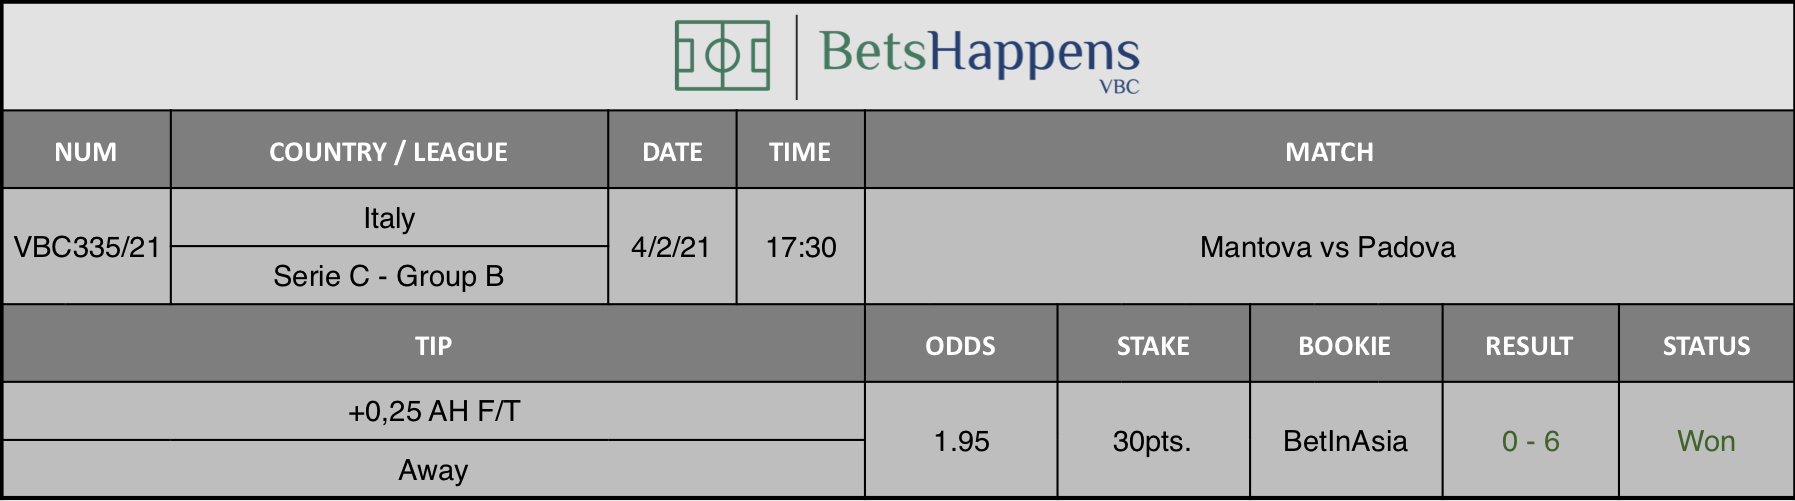 Results of our tip for the Mantova vs Padova match where +0,25 AH F/T Away is recommended.